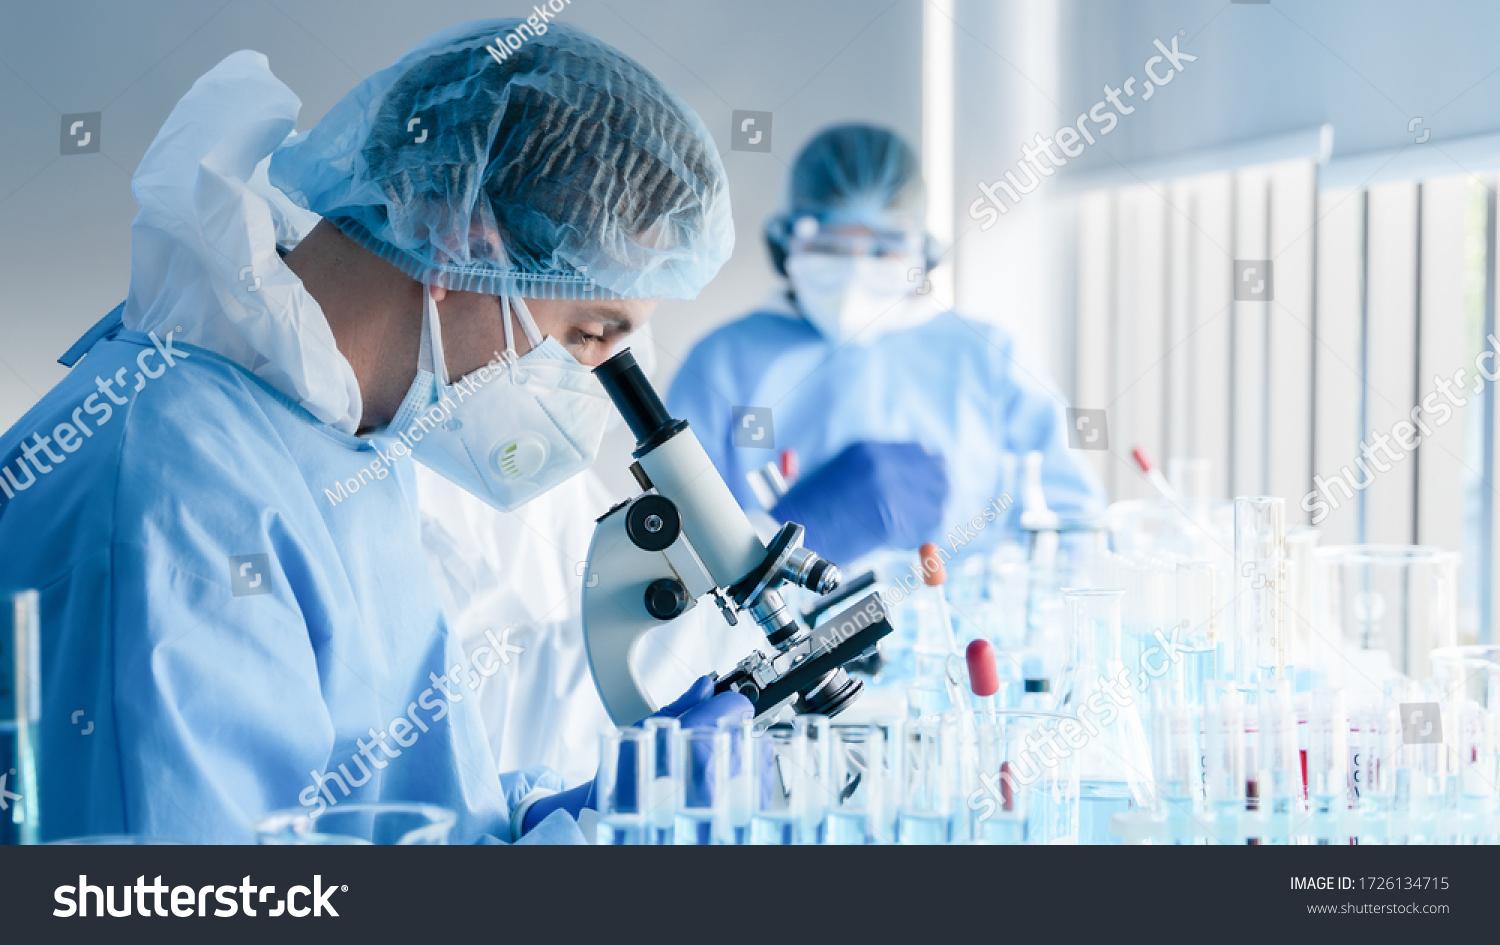 biochemical research scientist team working with microscope for coronavirus vaccine development in pharmaceutical research labolatory, selective focus #1726134715